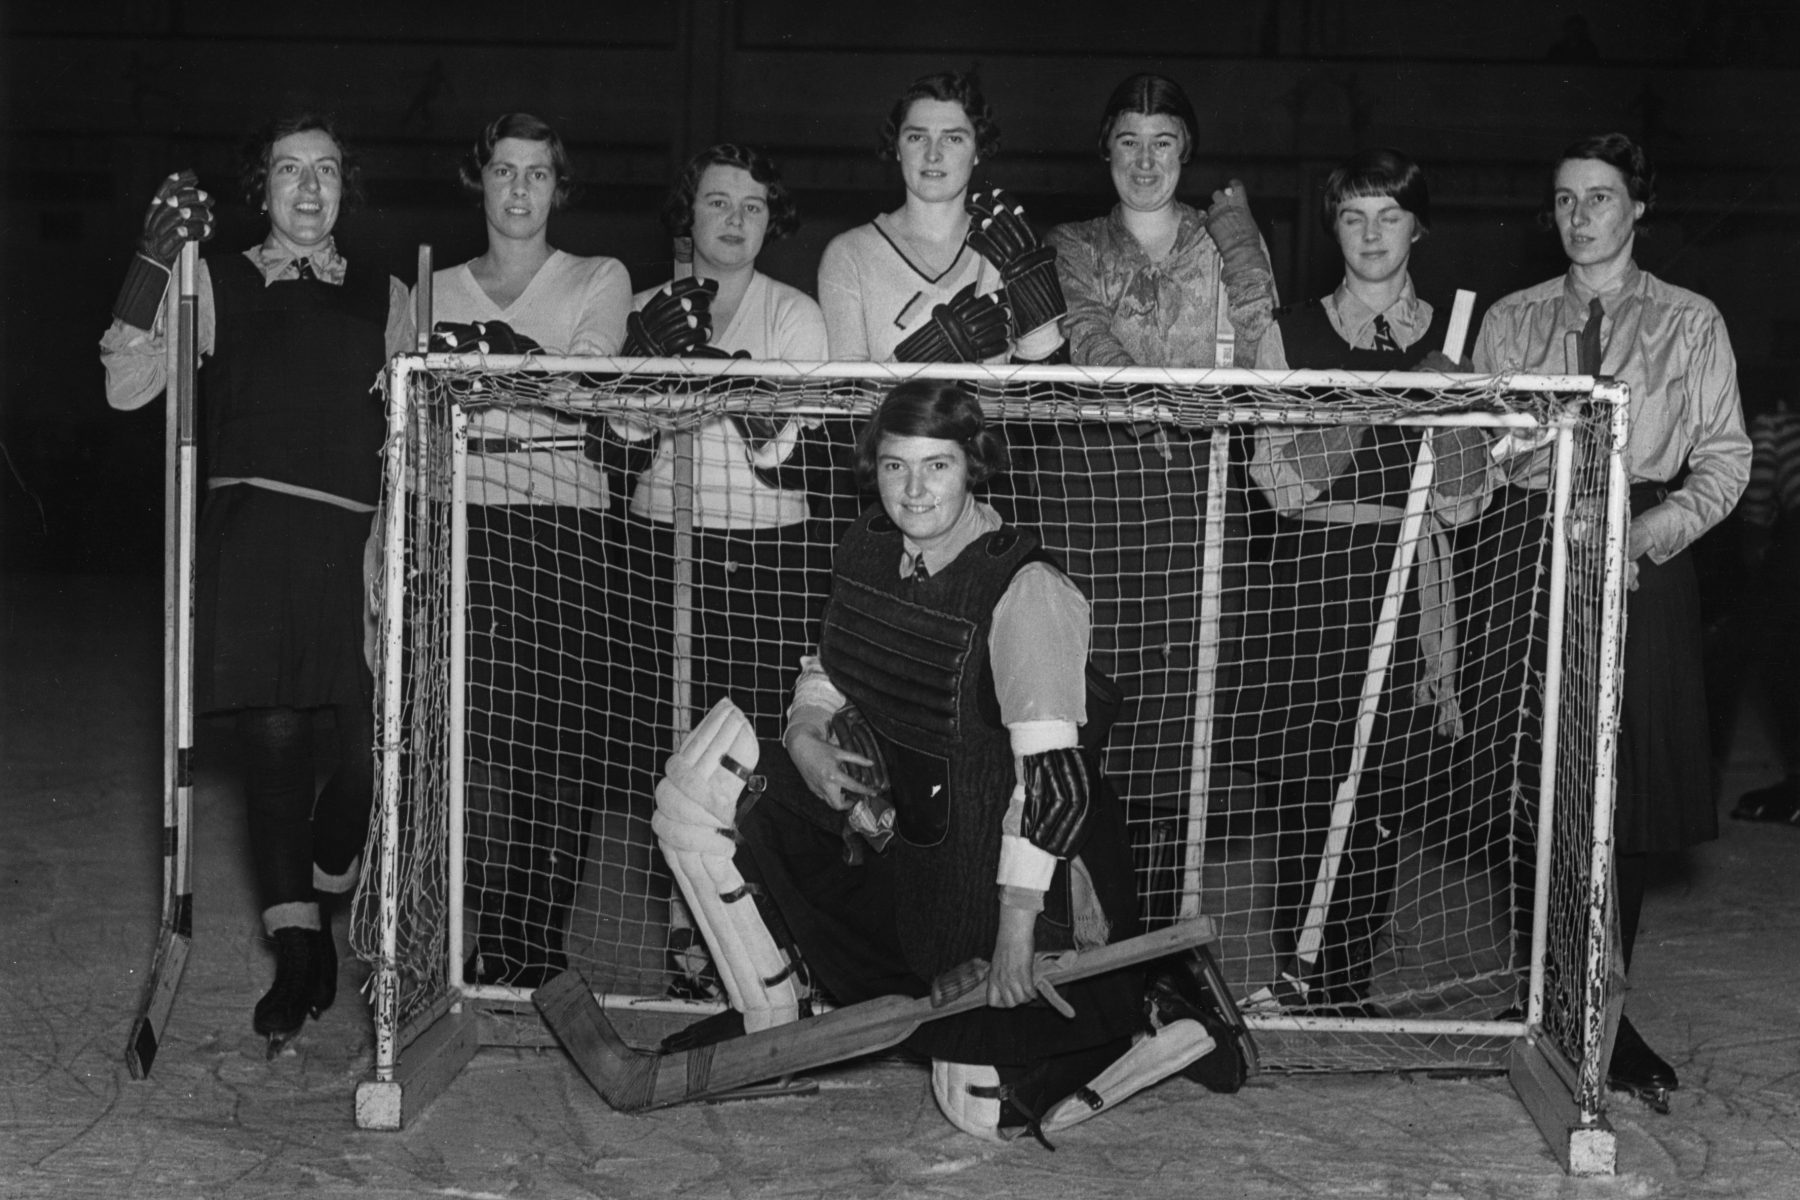 A women's hockey team, 1931